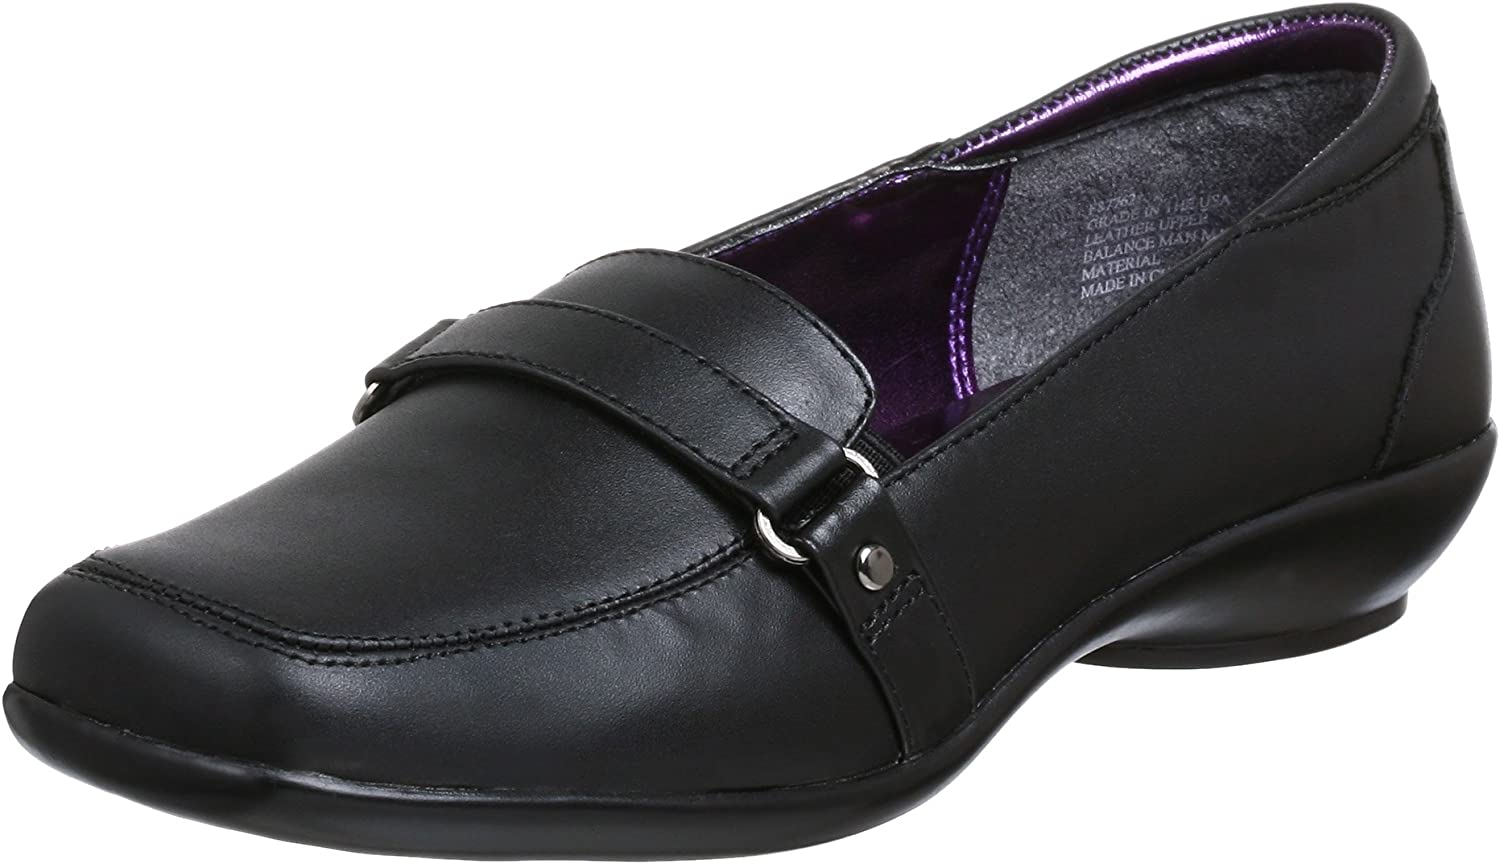 Kenneth Cole REACTION Little Kid/Big Kid Grade in the USA Shoe